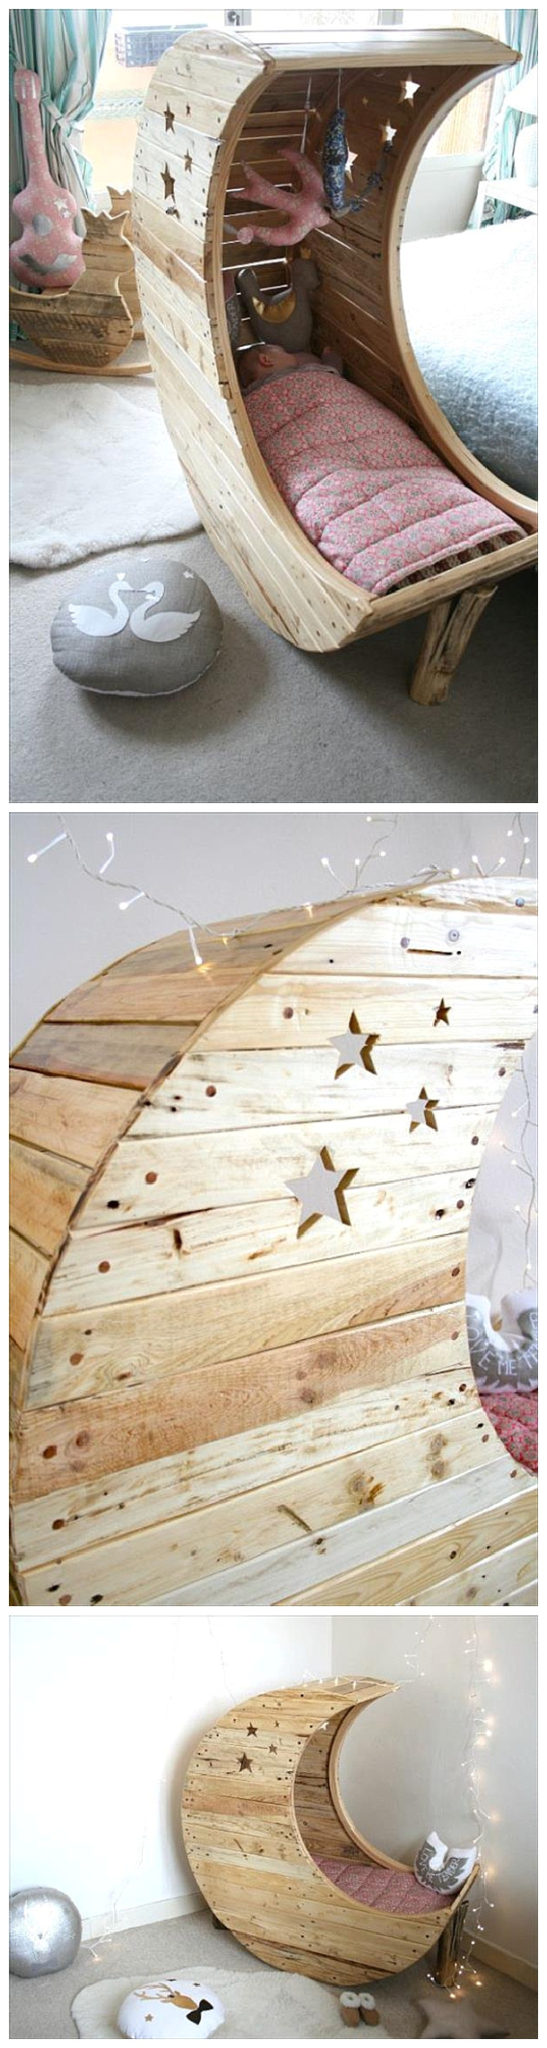 Do it Yourself Pallet Projects - DIY Pallet Moon Shaped Baby Cradle Woodworking Tutorial via 99